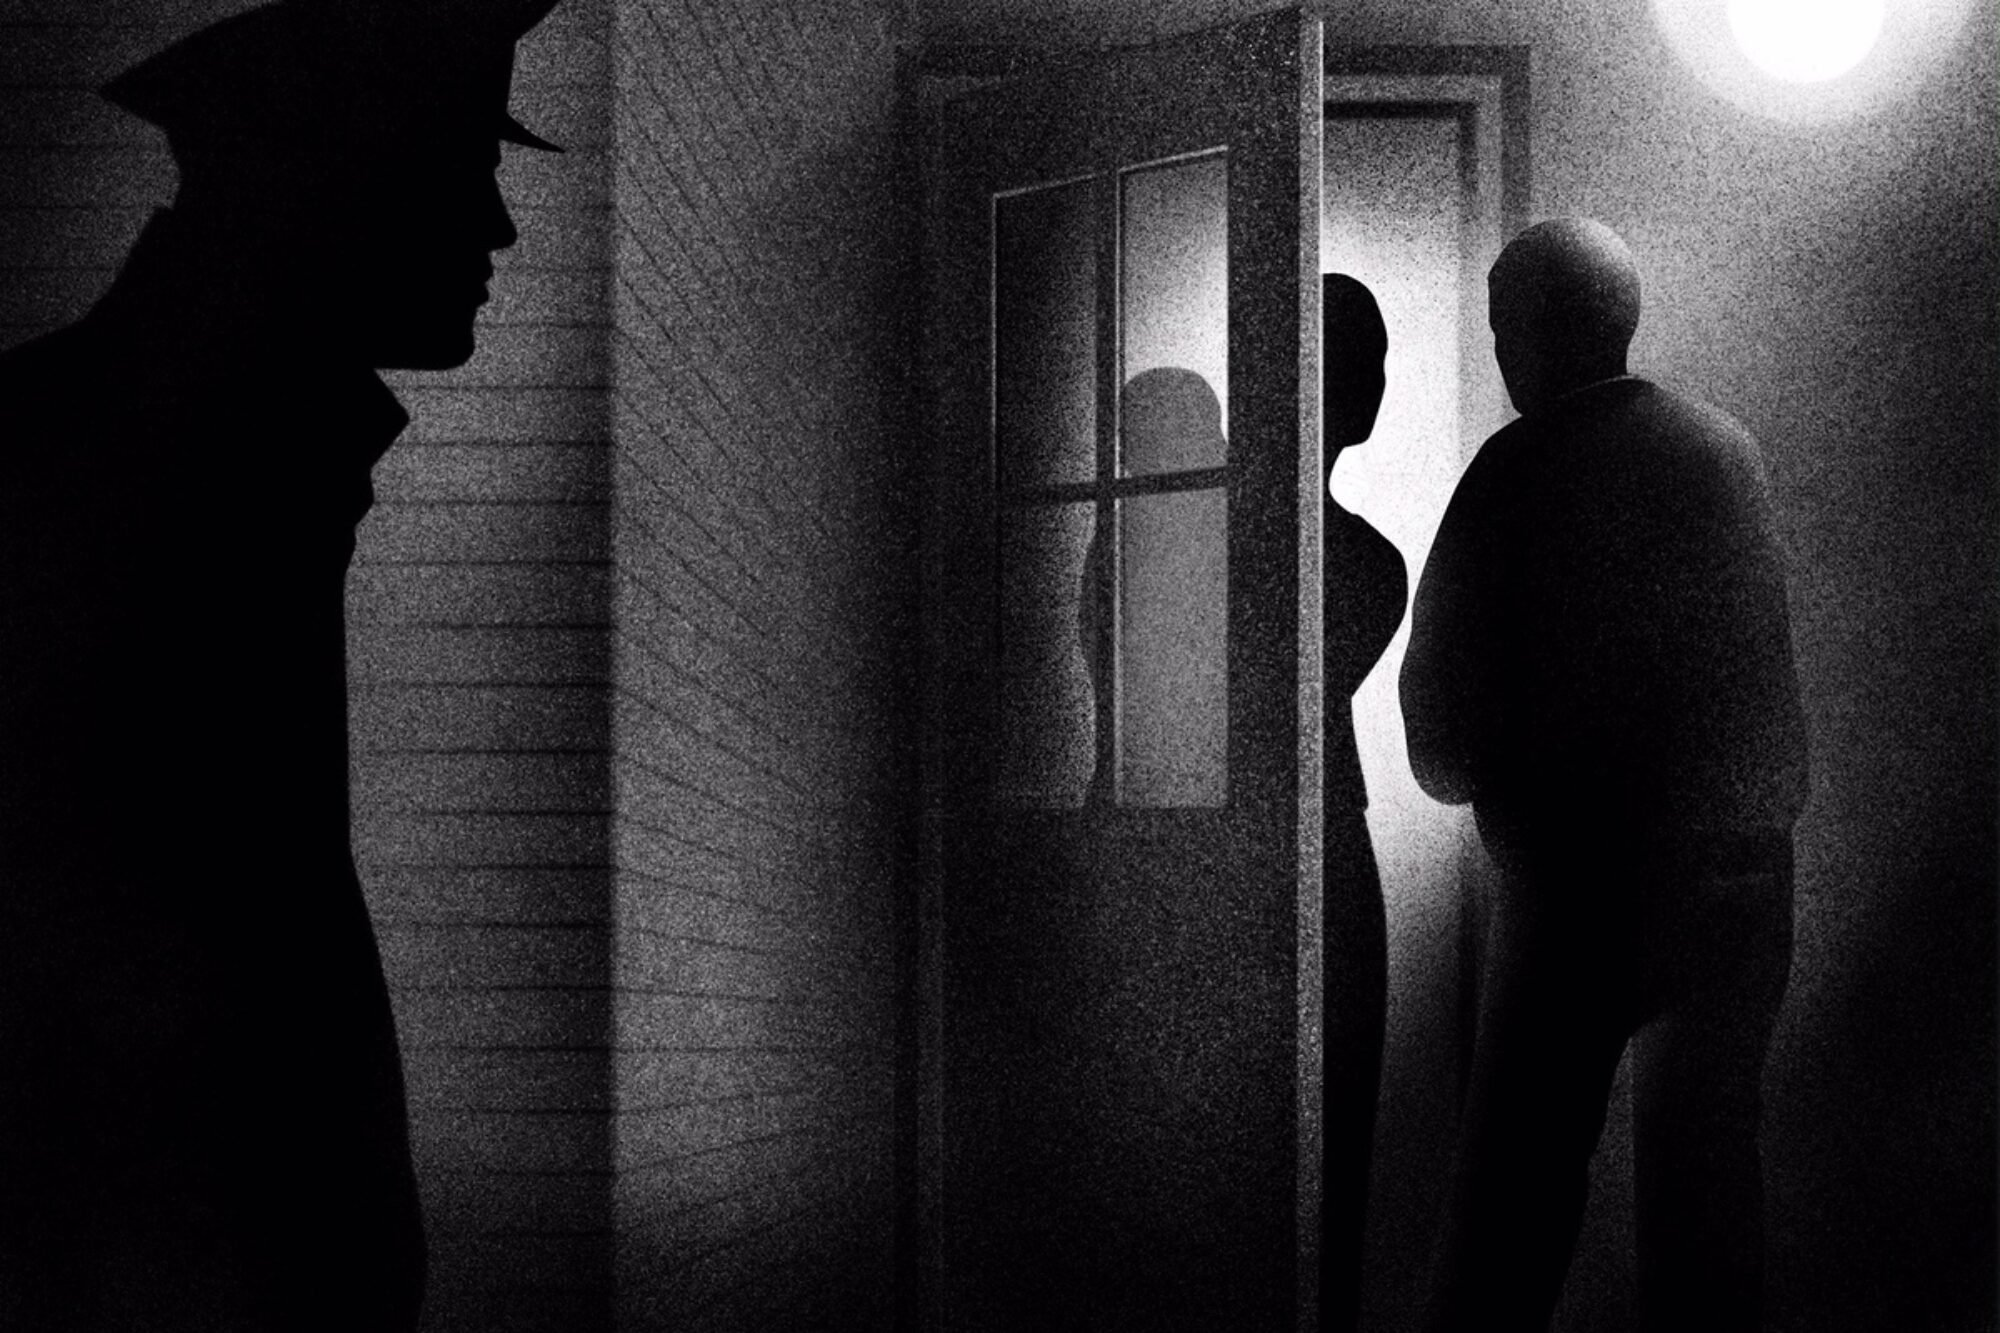 A black-and-white illustration of a police officer viewing two people talking outside of a house.